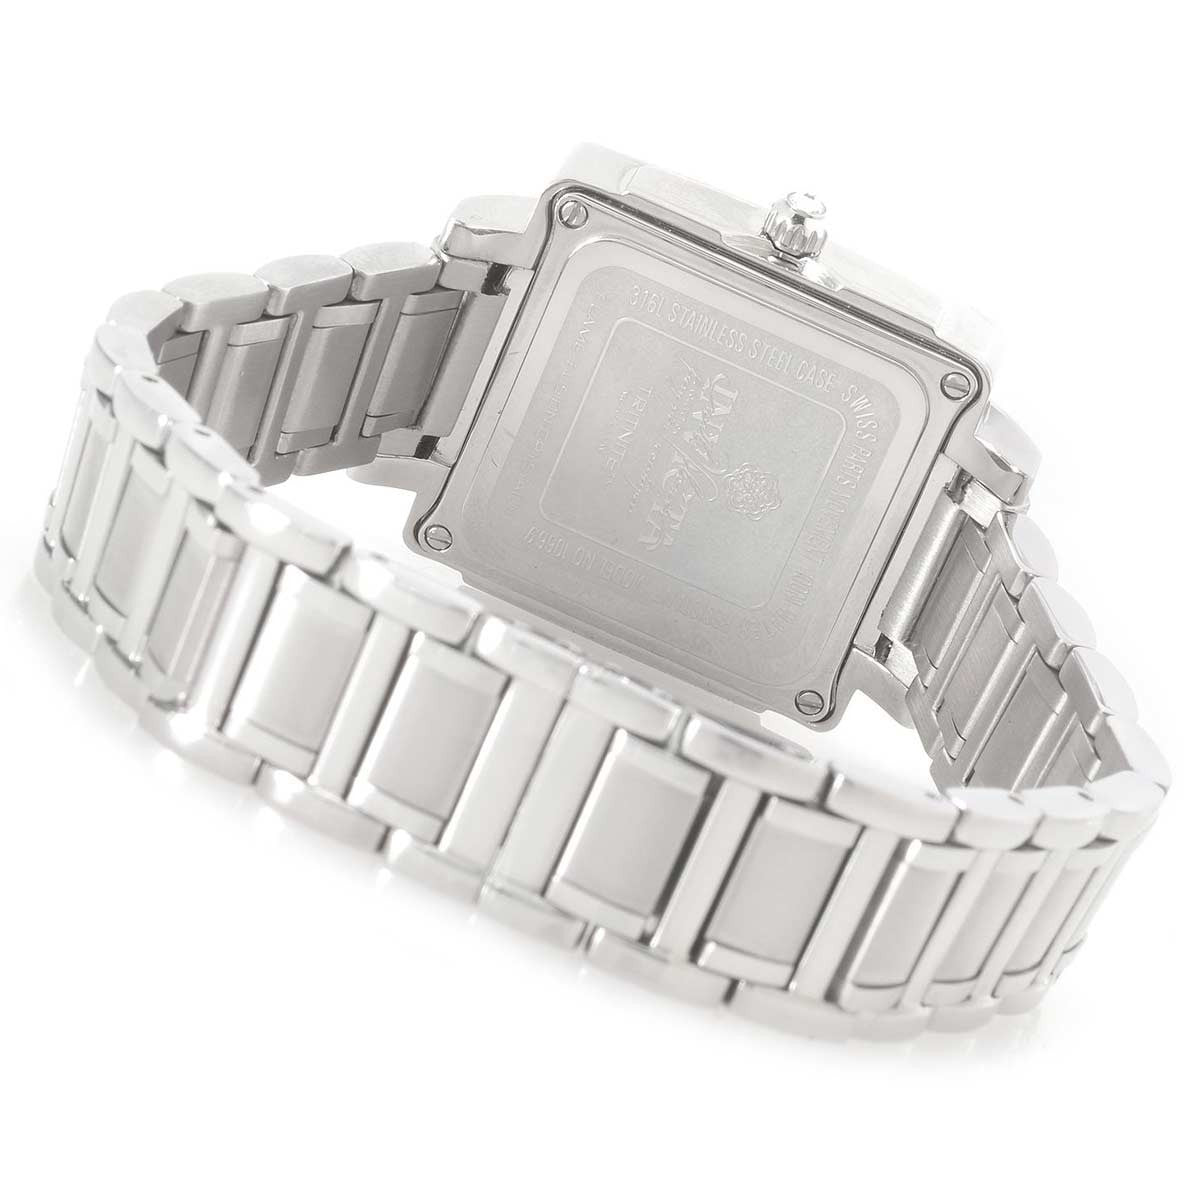 Invicta 10669 Women's Wildflower Diamond Accented Bezel White Dial Steel Bracelet Watch